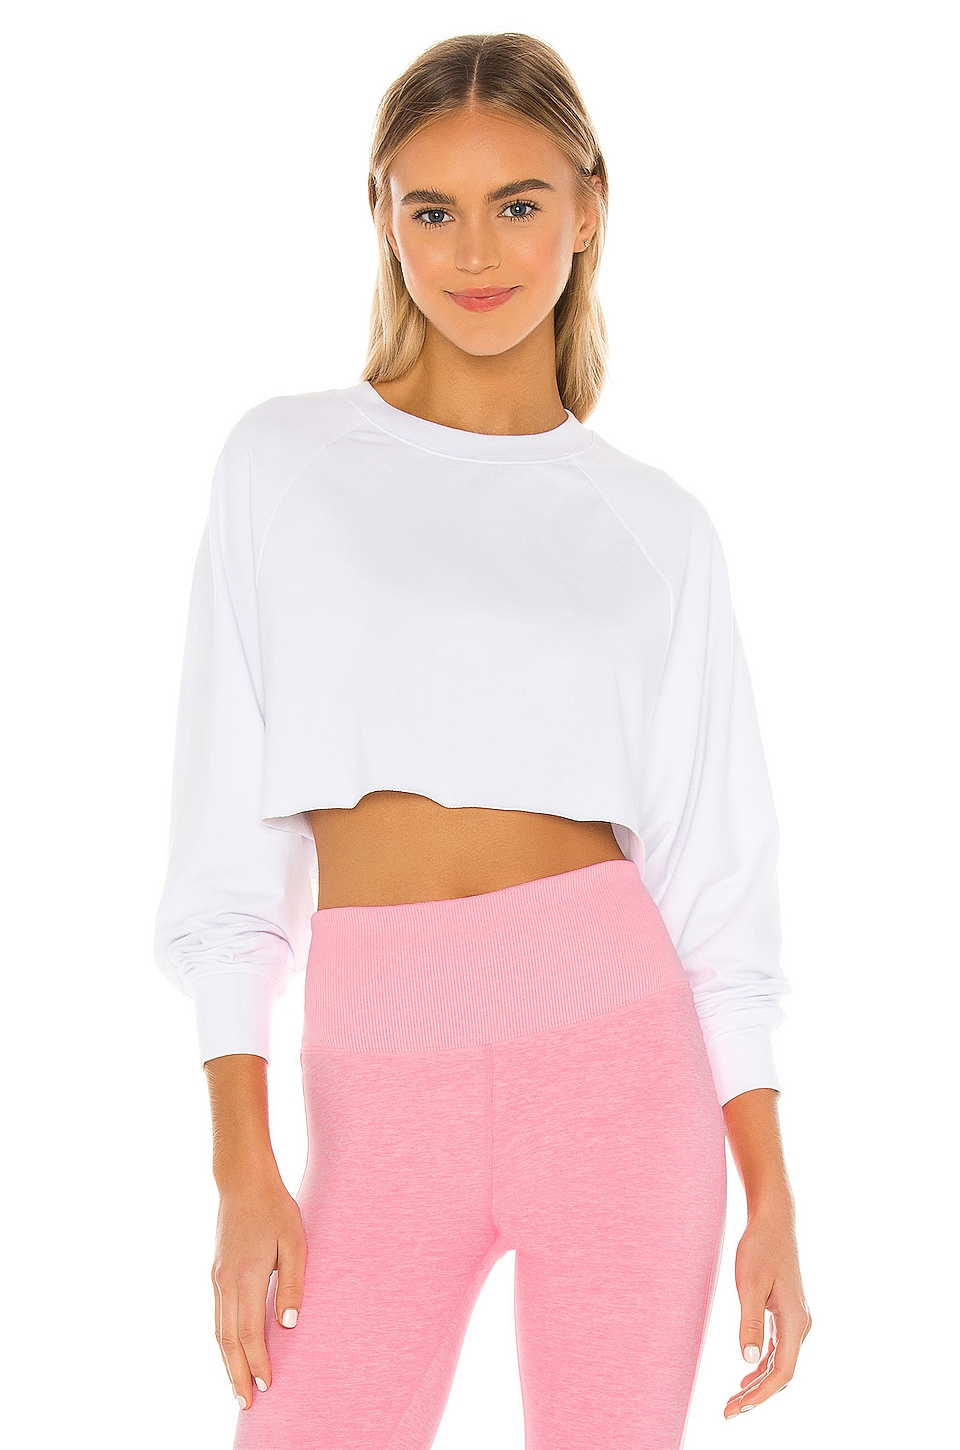 Double Take Pullover             alo                                                                                                       CA$ 123.57 3